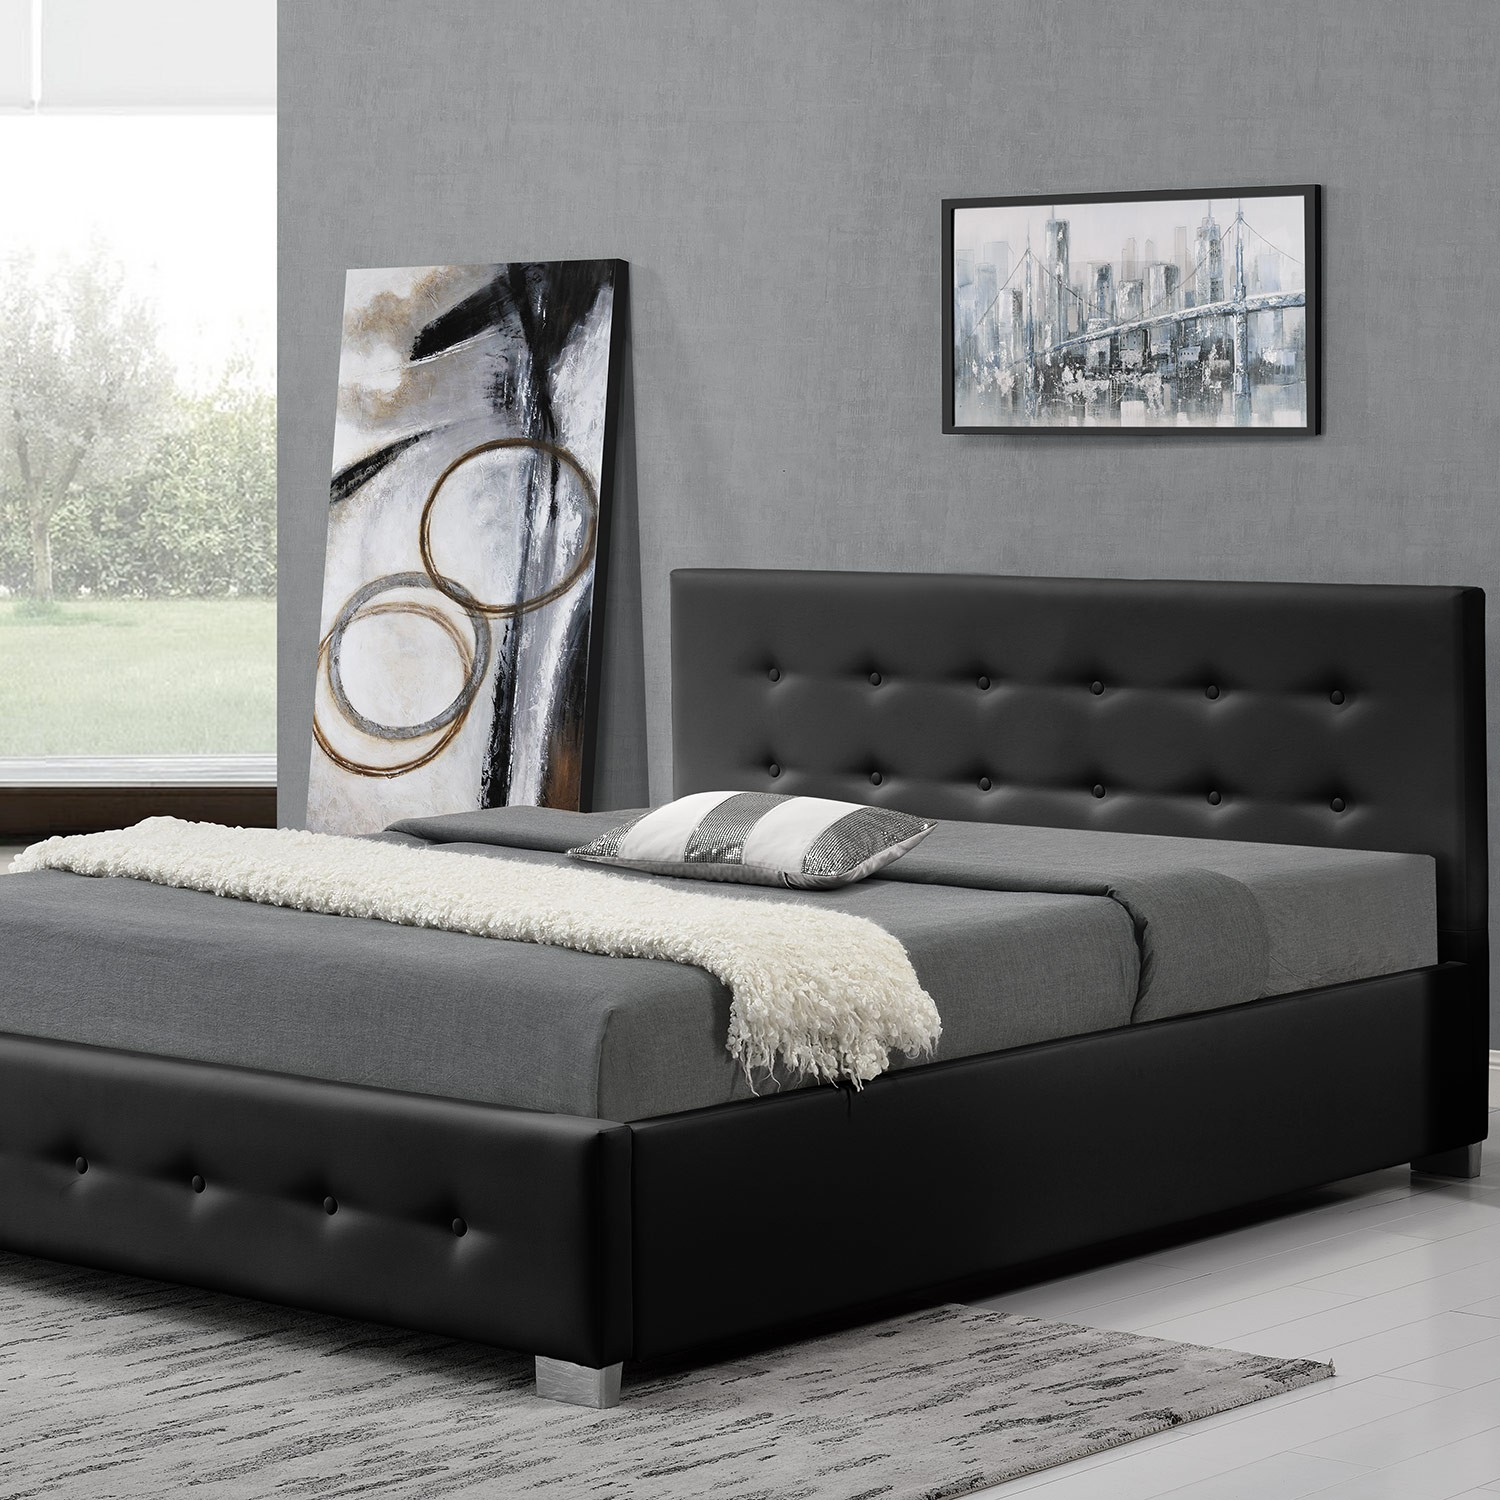 clapton 140 noir cadre de lit design avec coffre de rangement. Black Bedroom Furniture Sets. Home Design Ideas